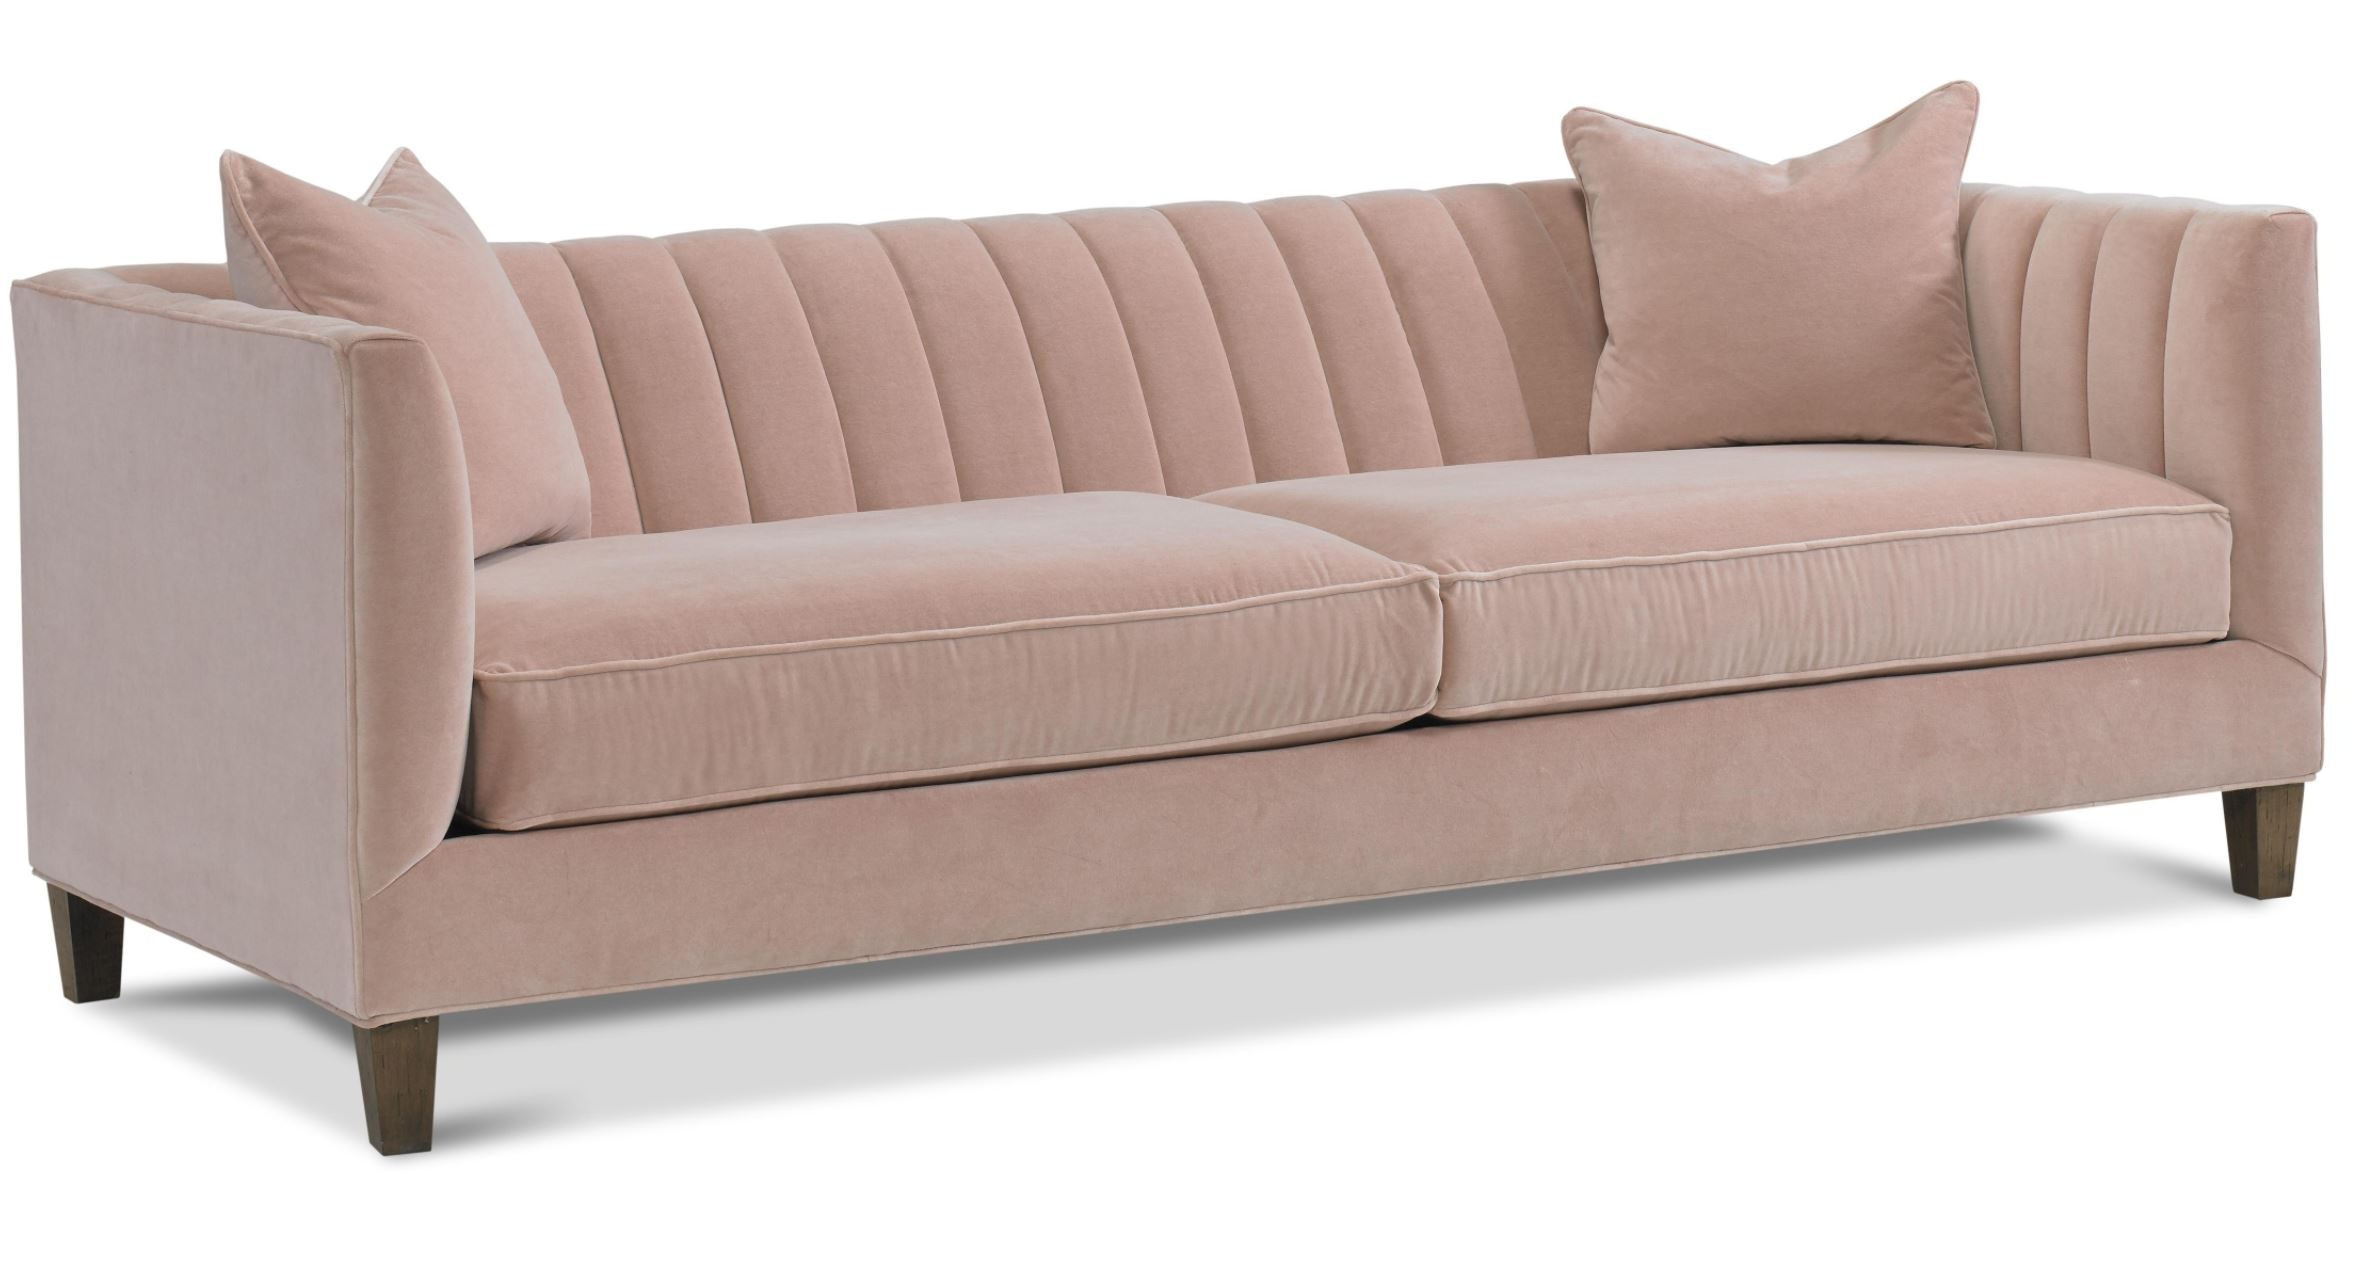 Penelope Channel Tufted Sofa